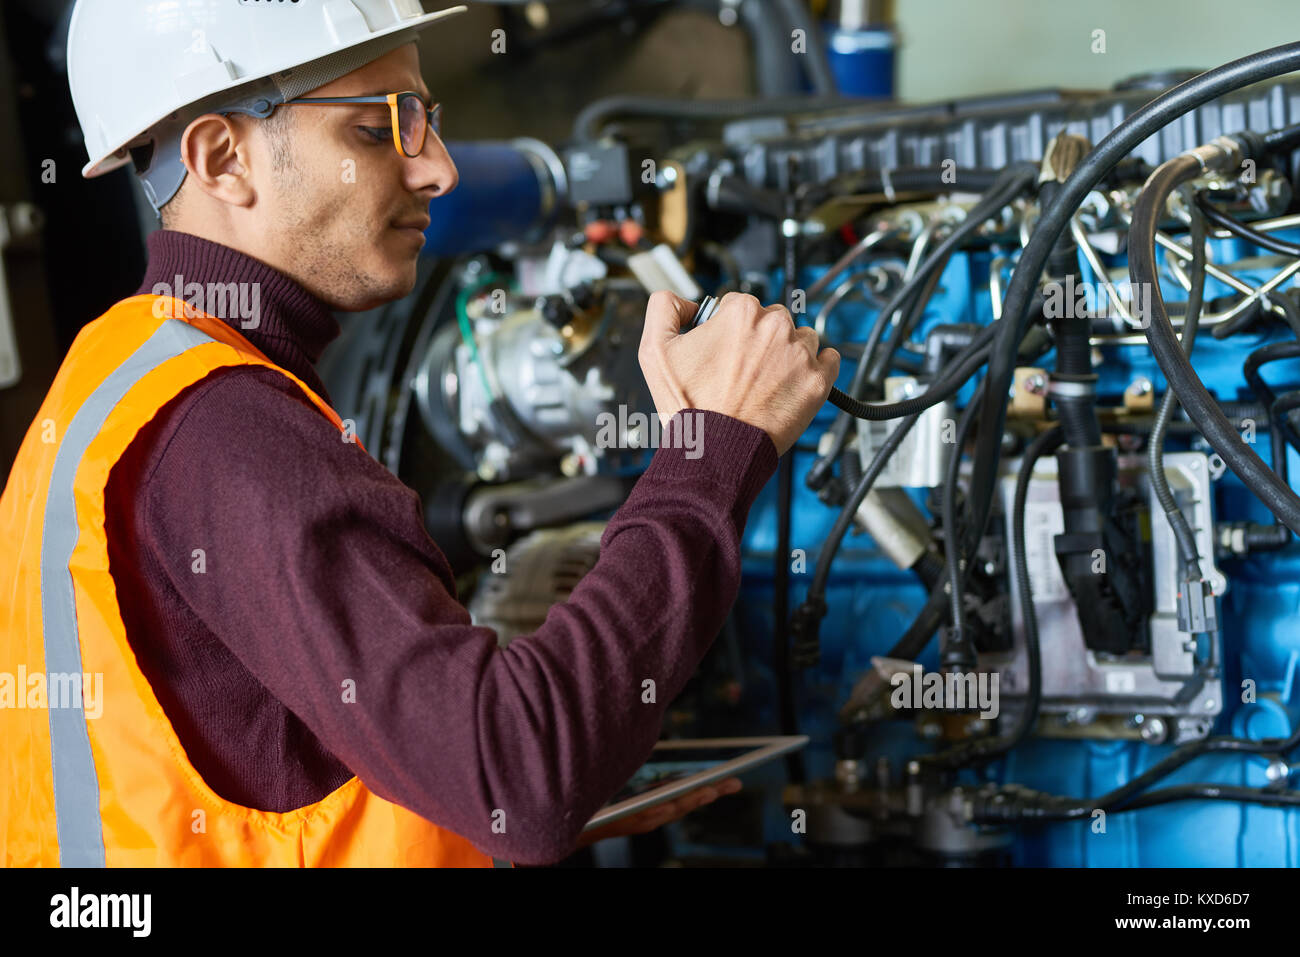 Checking Heavy Equipment at Modern Plant - Stock Image